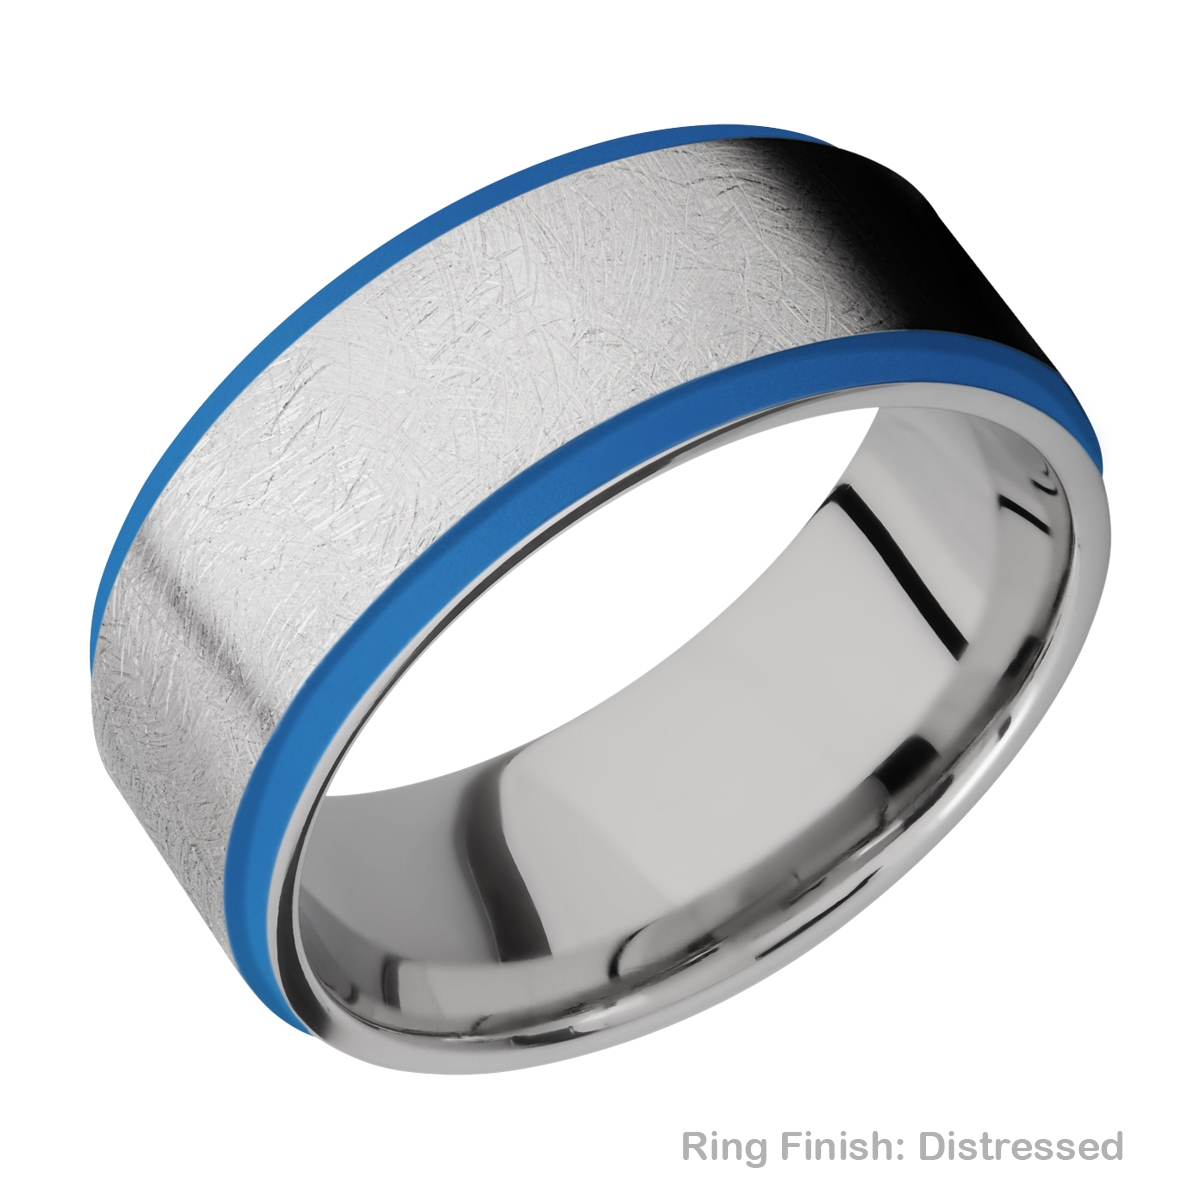 Lashbrook CC10FGE21EDGE/A/CERAKOTE Cobalt Chrome Wedding Ring or Band Alternative View 13